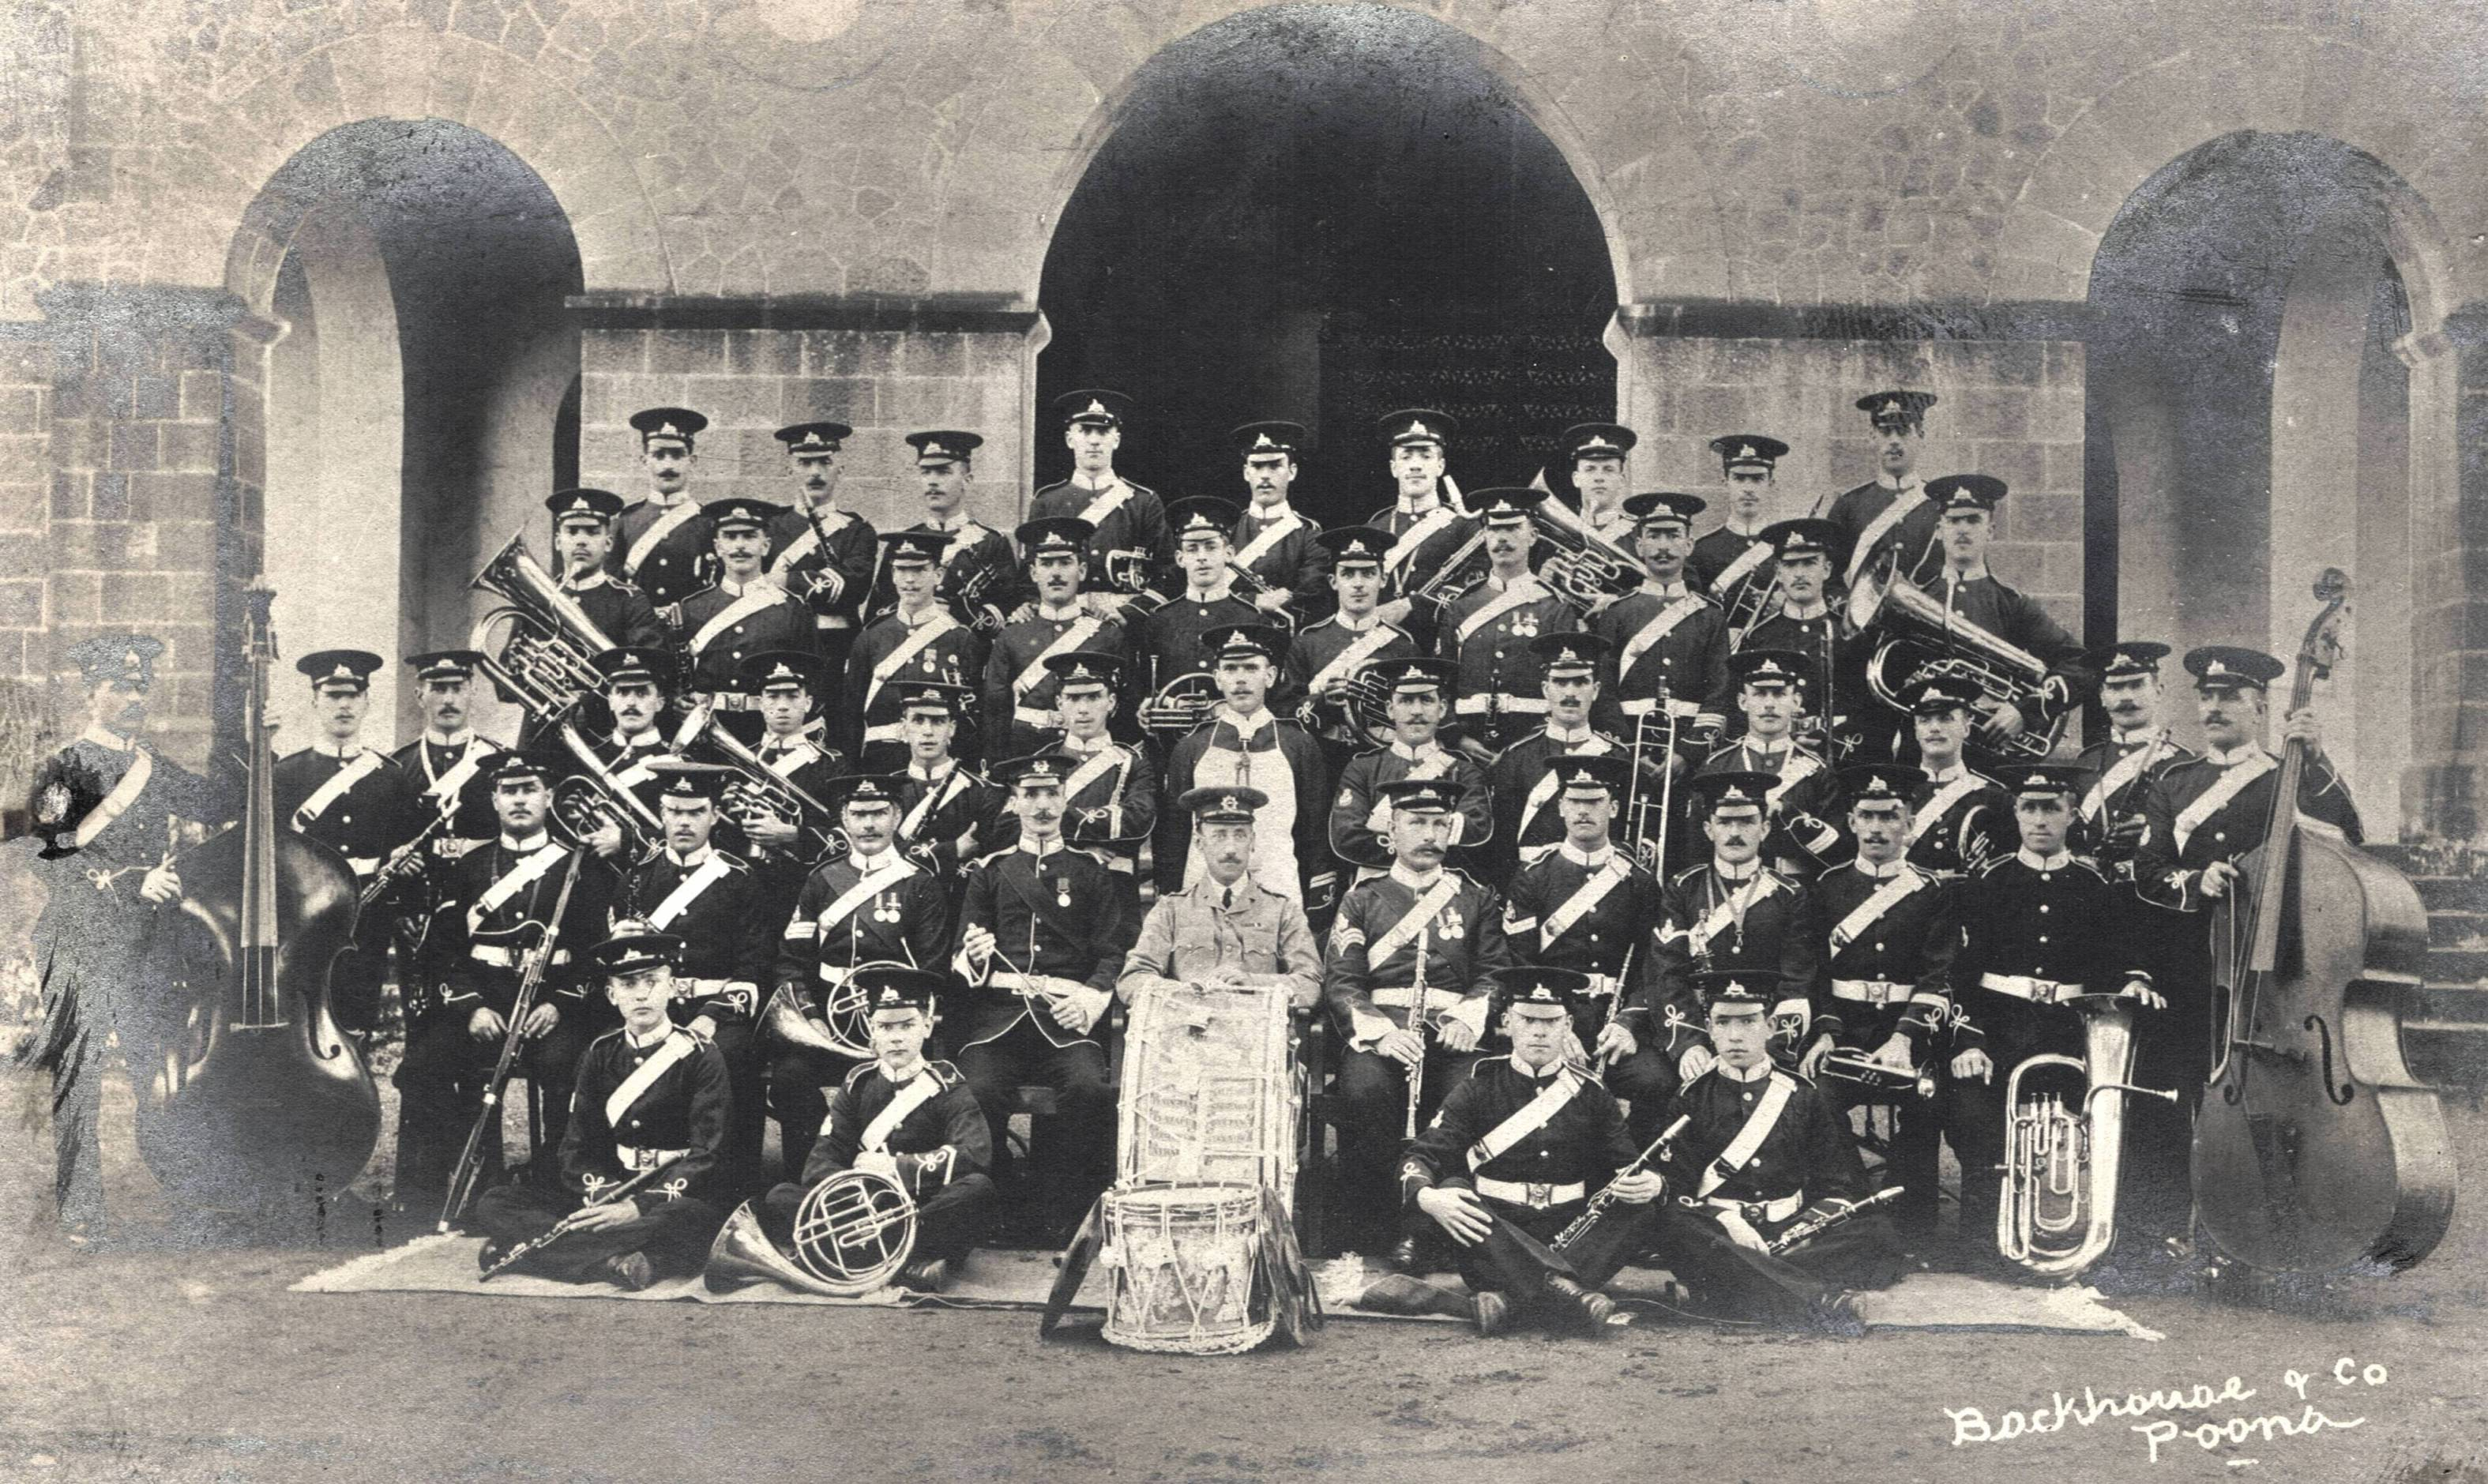 1st Battalion Band, Poona